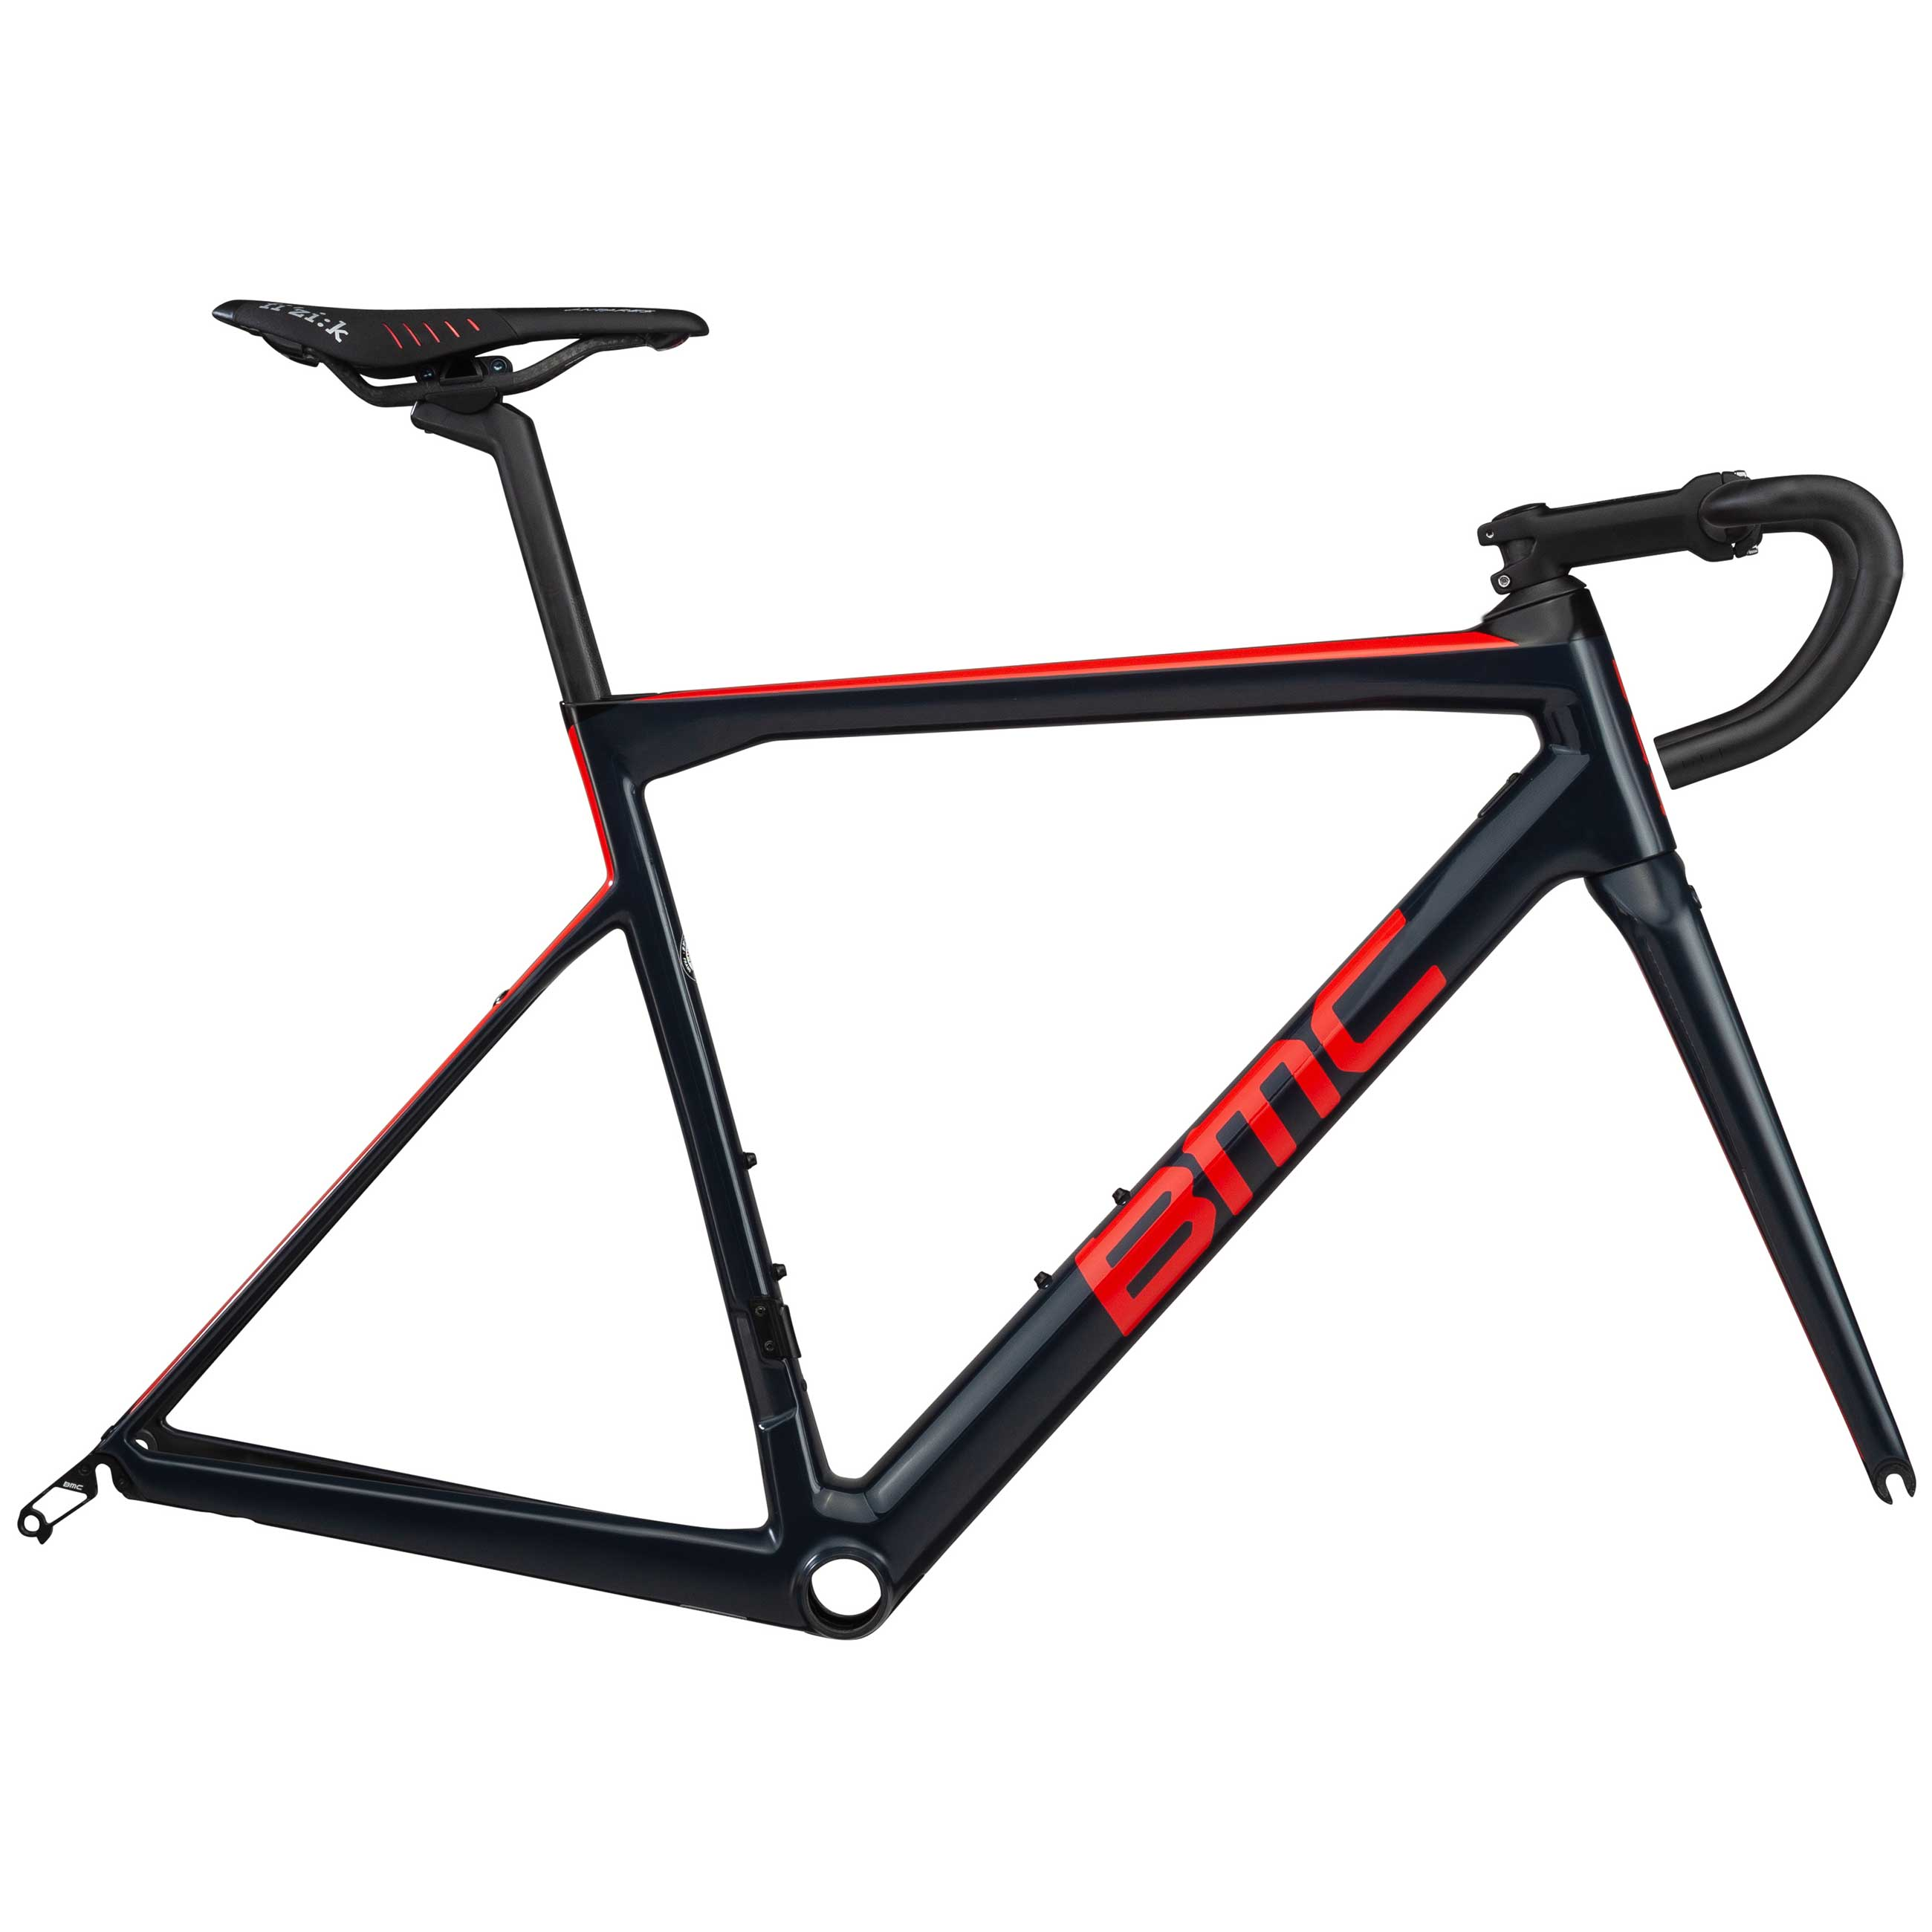 BMC TeamMachine SLR01 Road Frameset Module